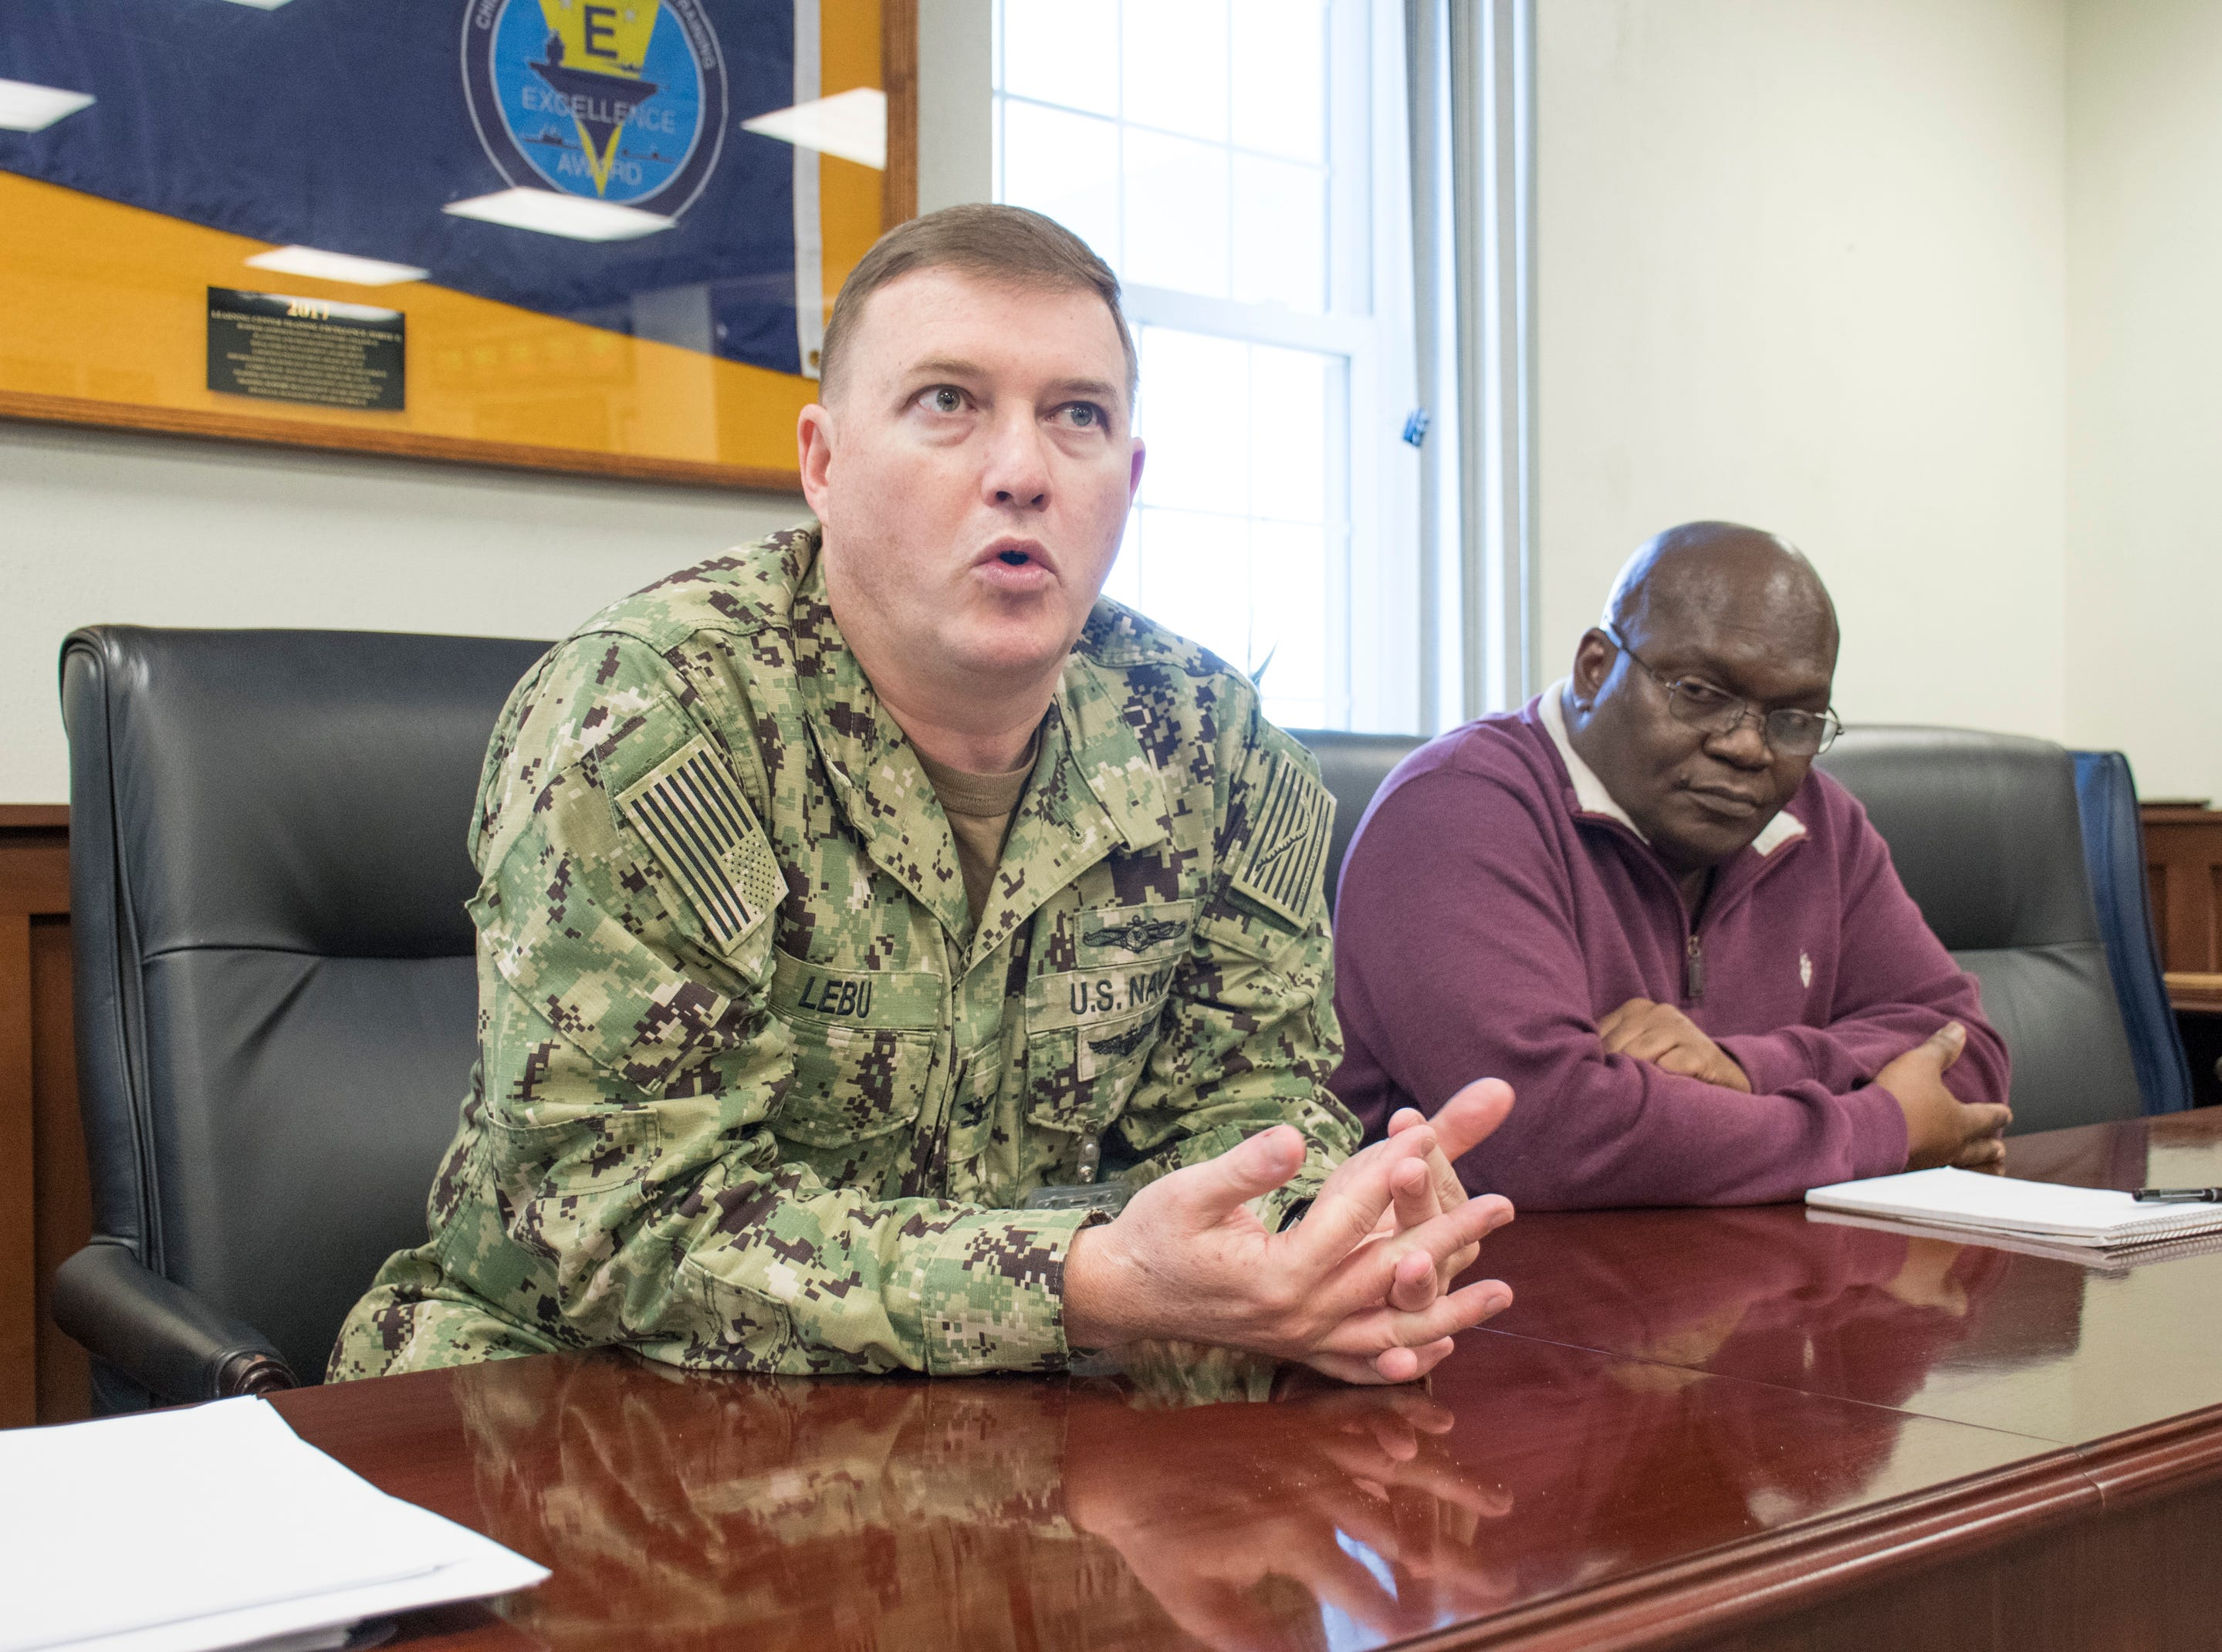 Capt. Mike Lebu, Cyber Mission Force program manager, left, talks about the building projects and expansion underway at NAS Pensacola Corry Station in Pensacola on Thursday, January 10, 2019.